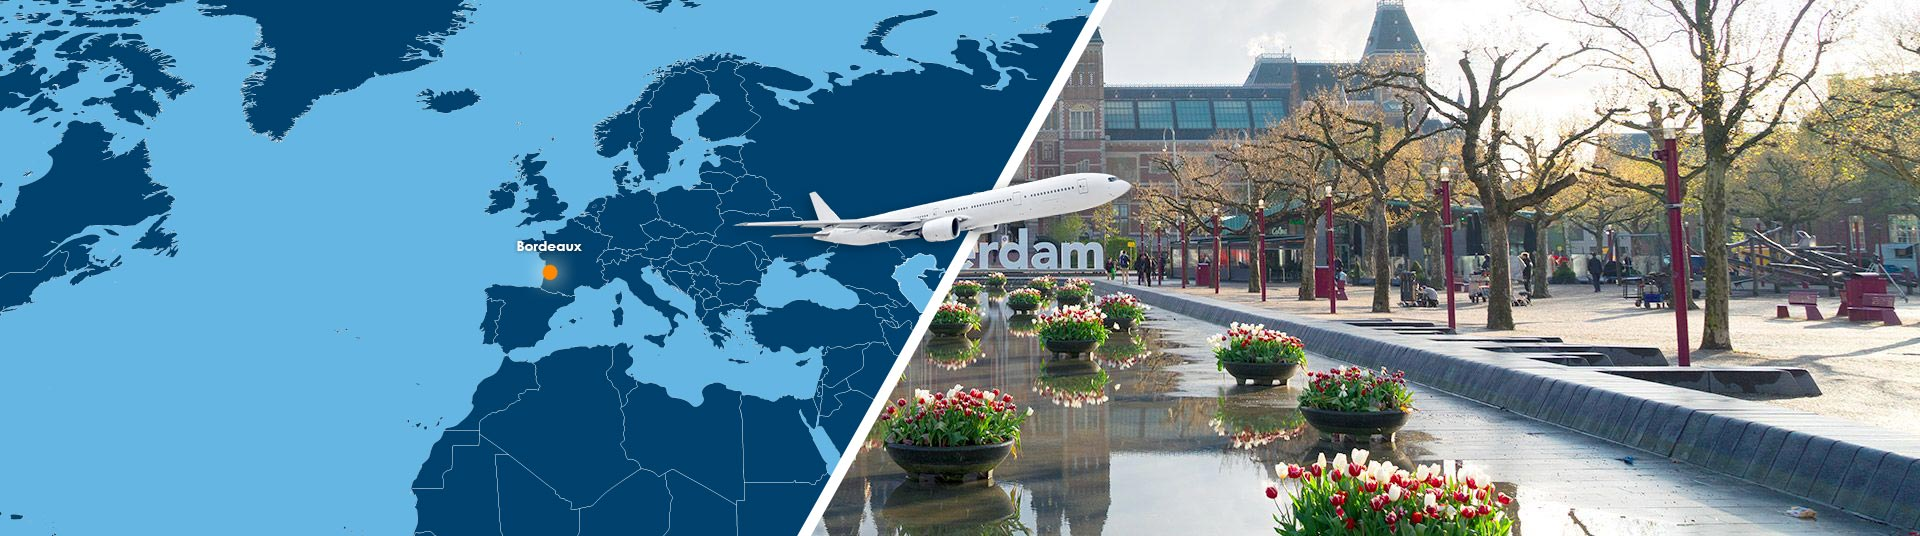 Vol bordeaux amsterdam pas cher r server un billet avion for Reserver pas cher